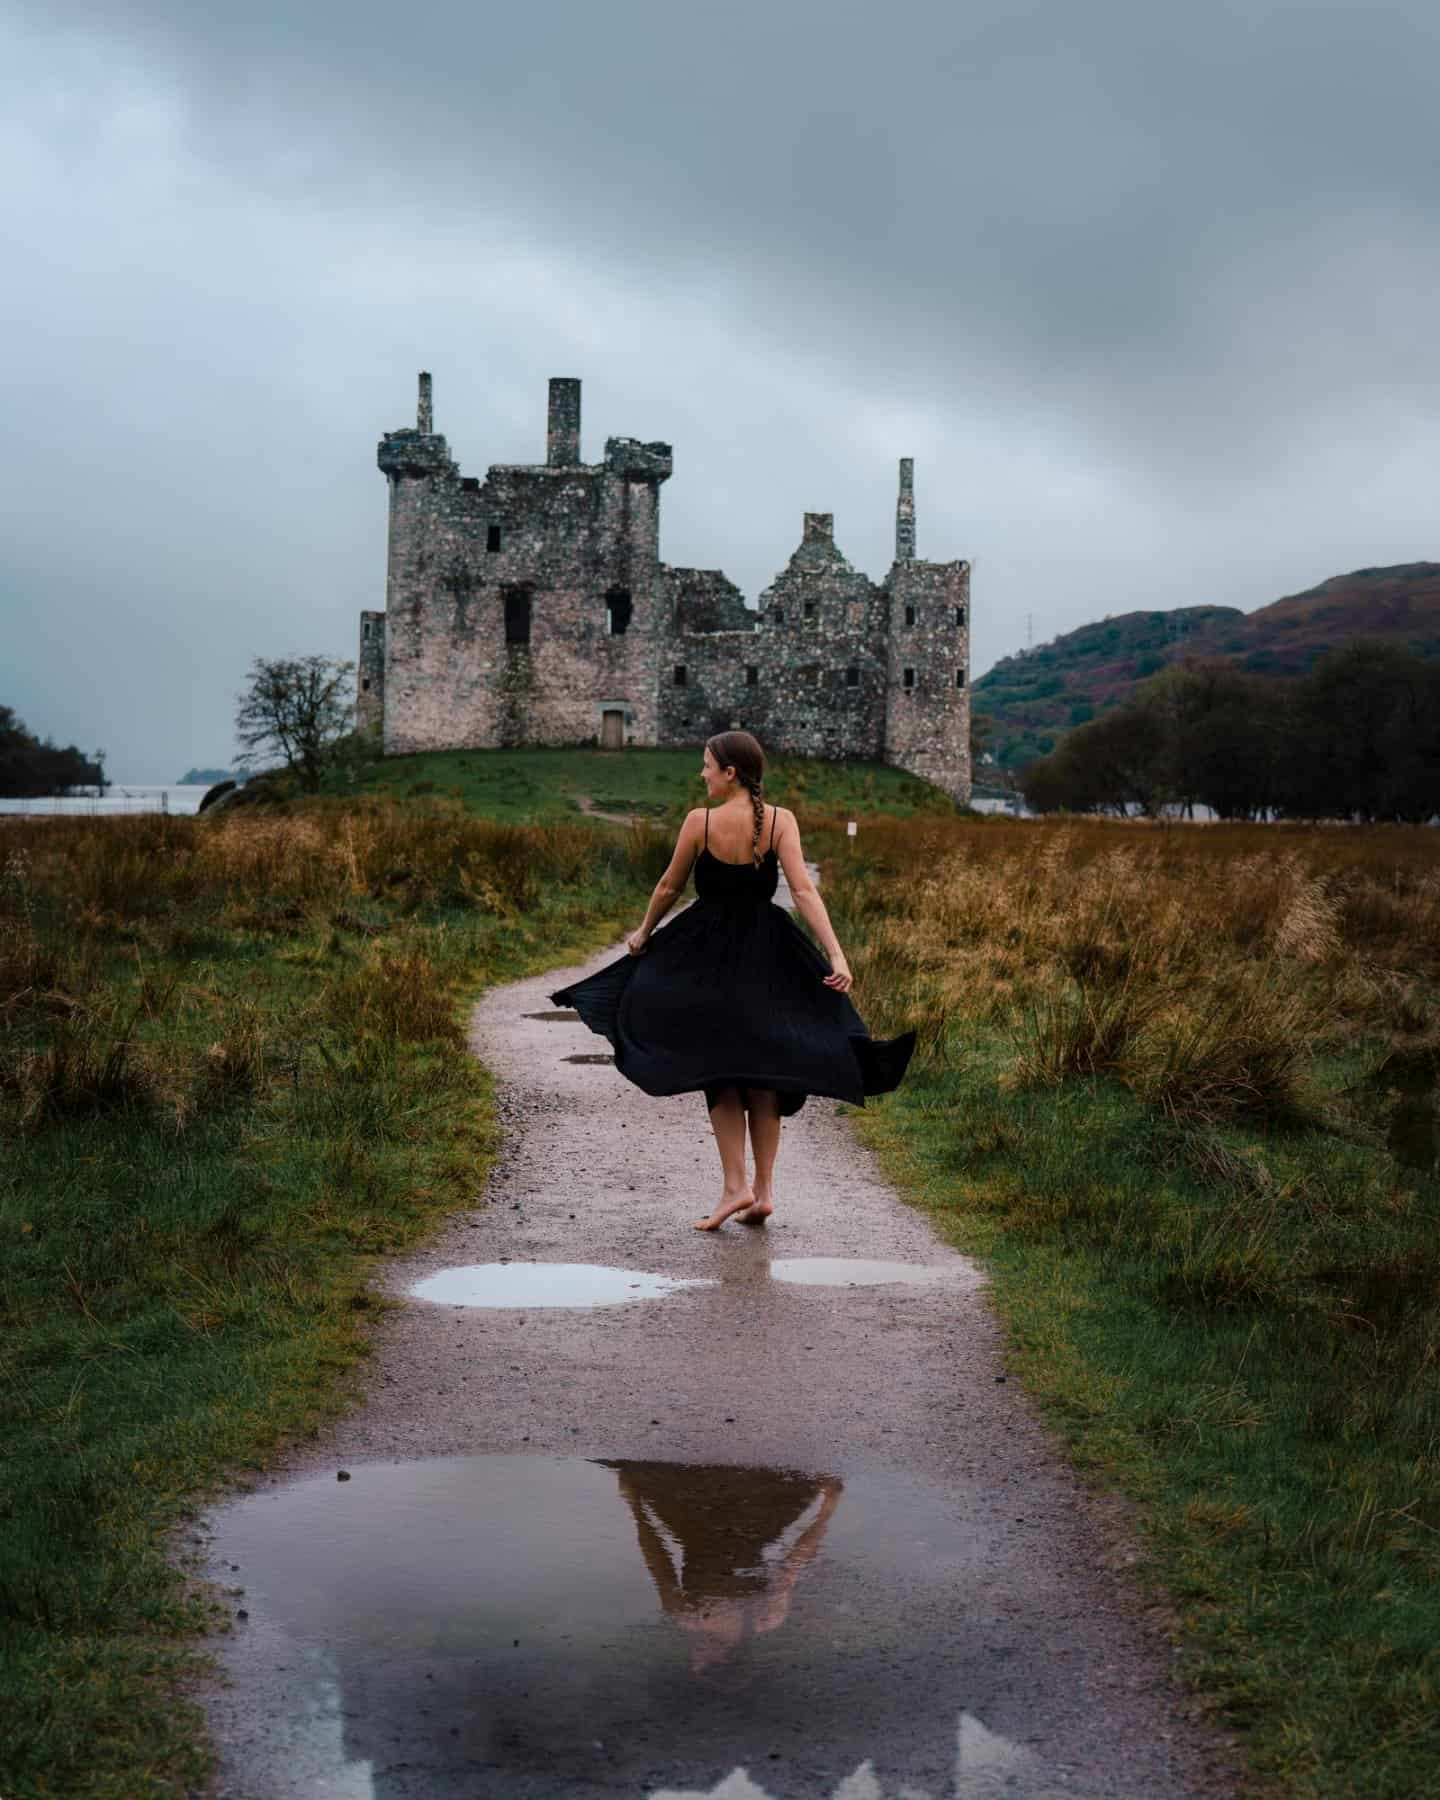 Walking the path to Kilchurn Castle on a moody morning.